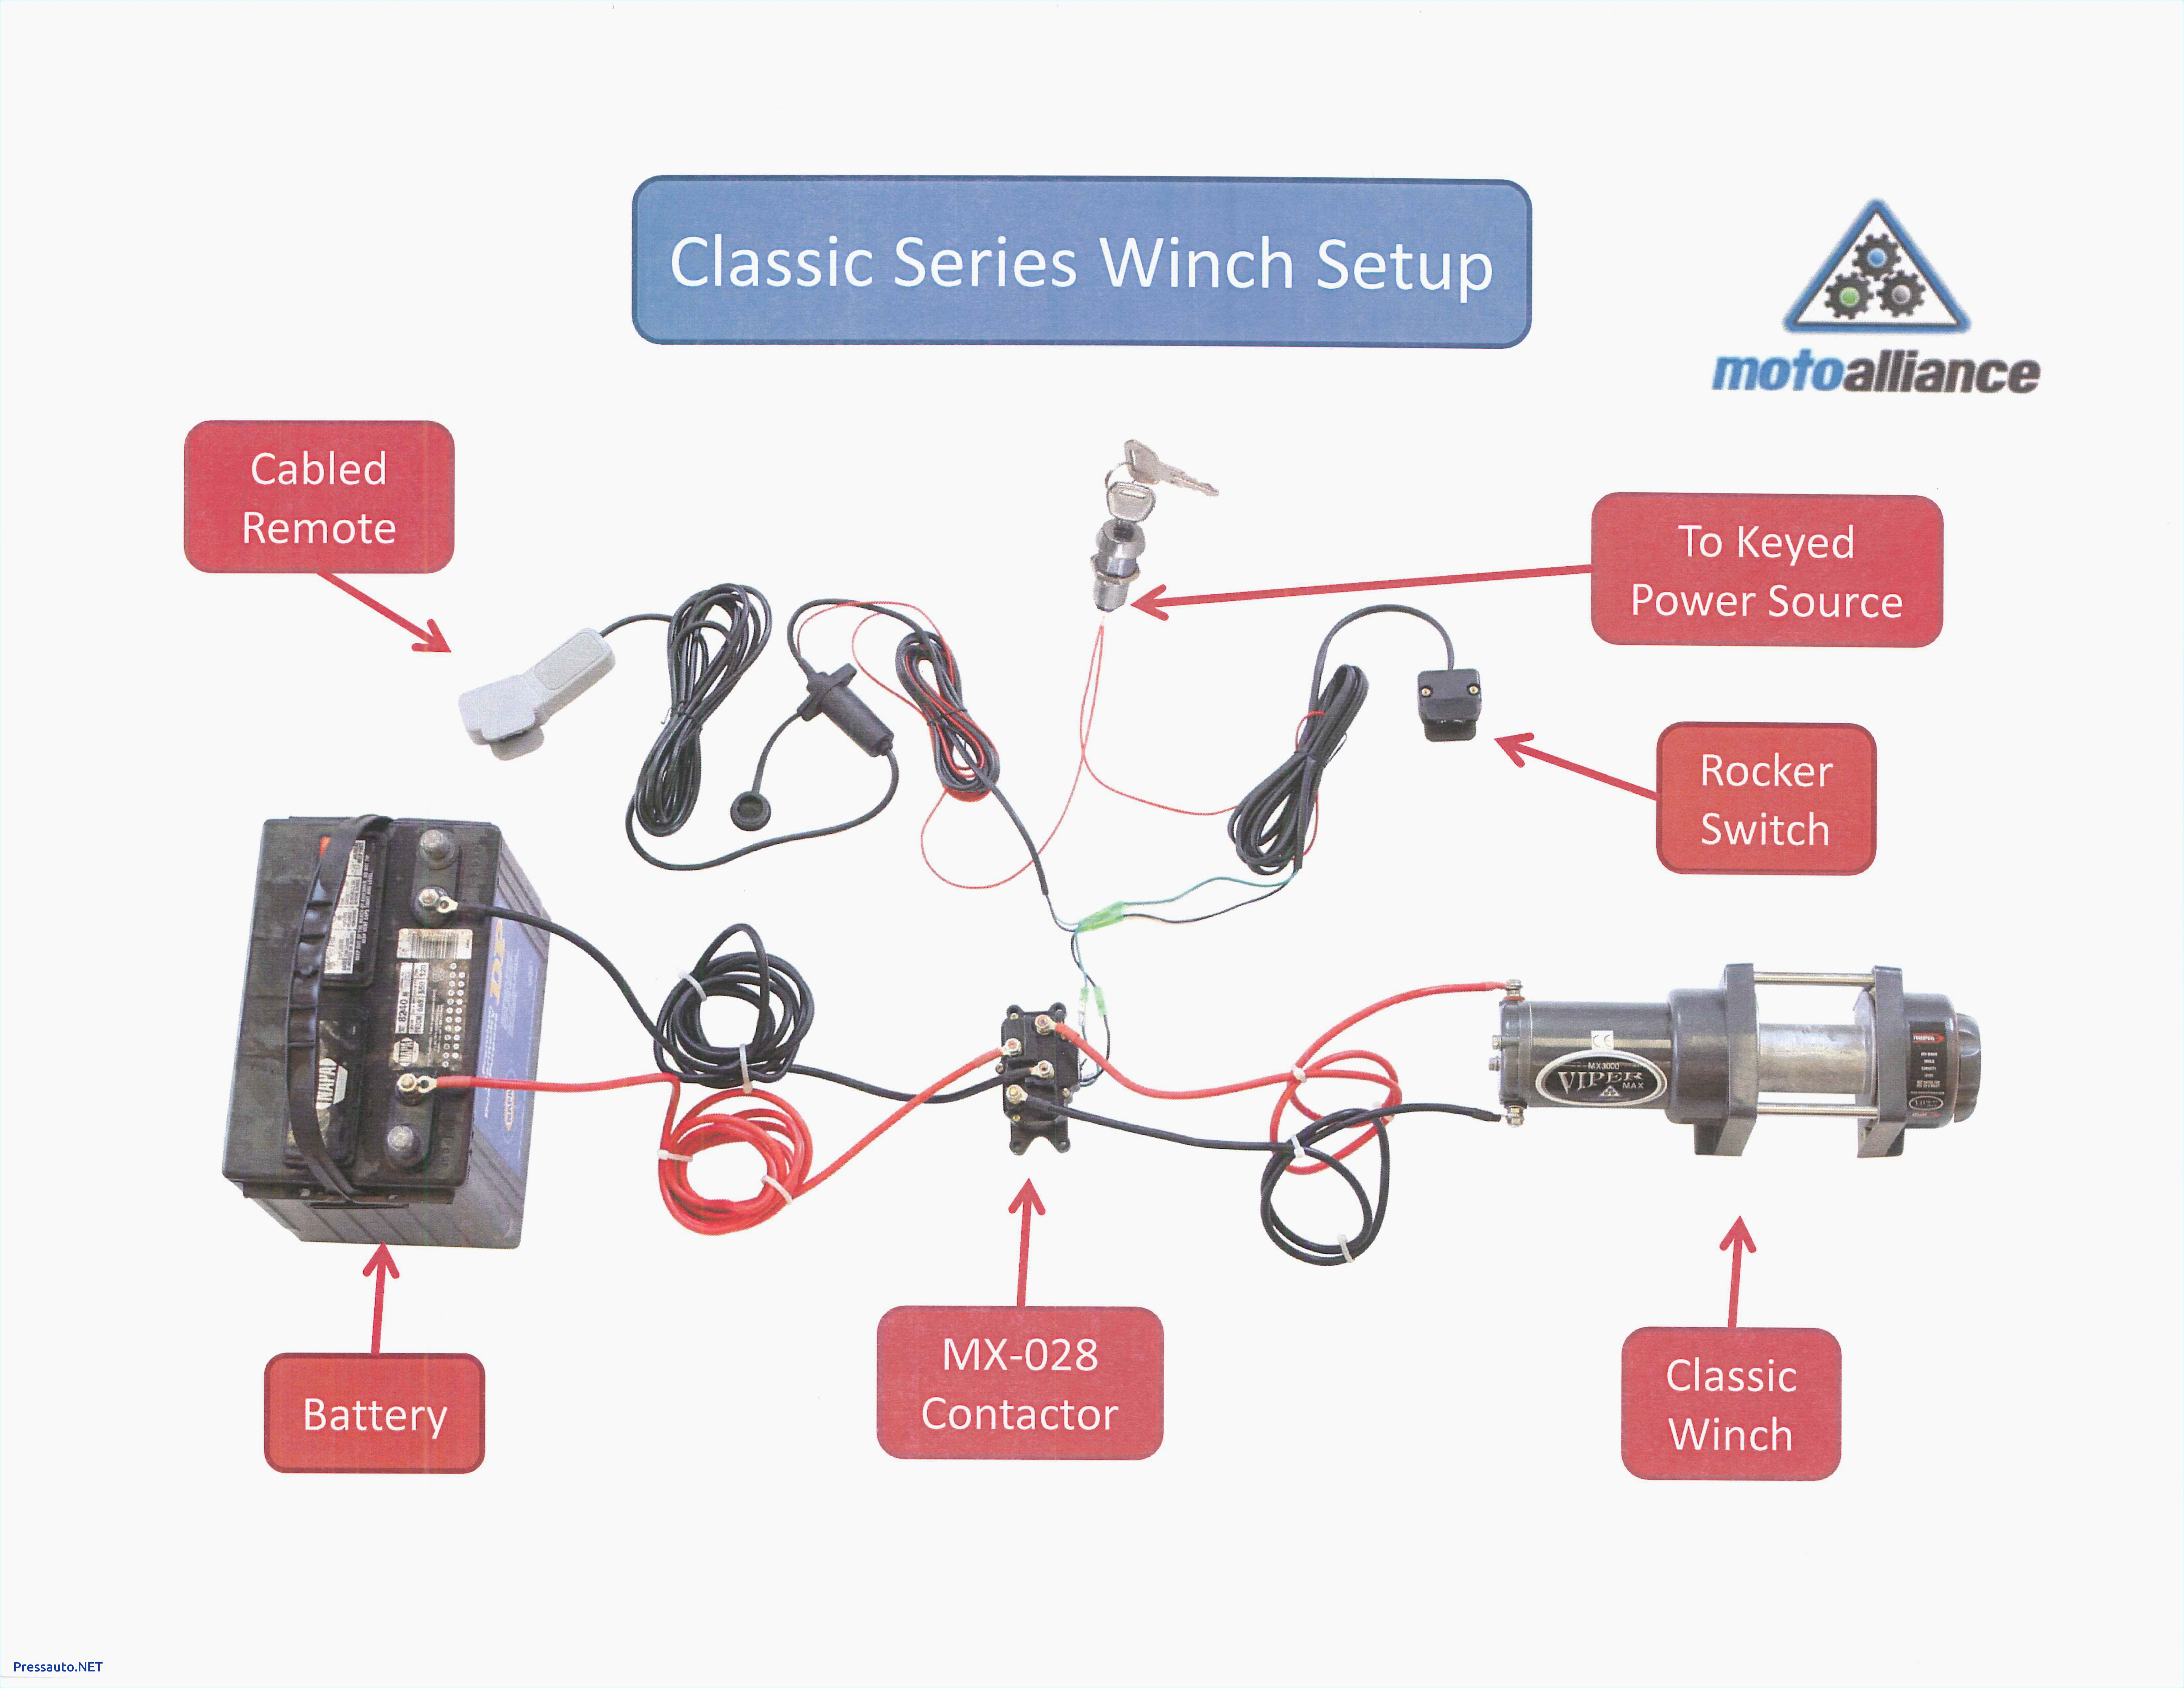 12 Volt Atv Winch Contactor Wiring Diagram | Wiring Diagram - Traveller Winch Wiring Diagram